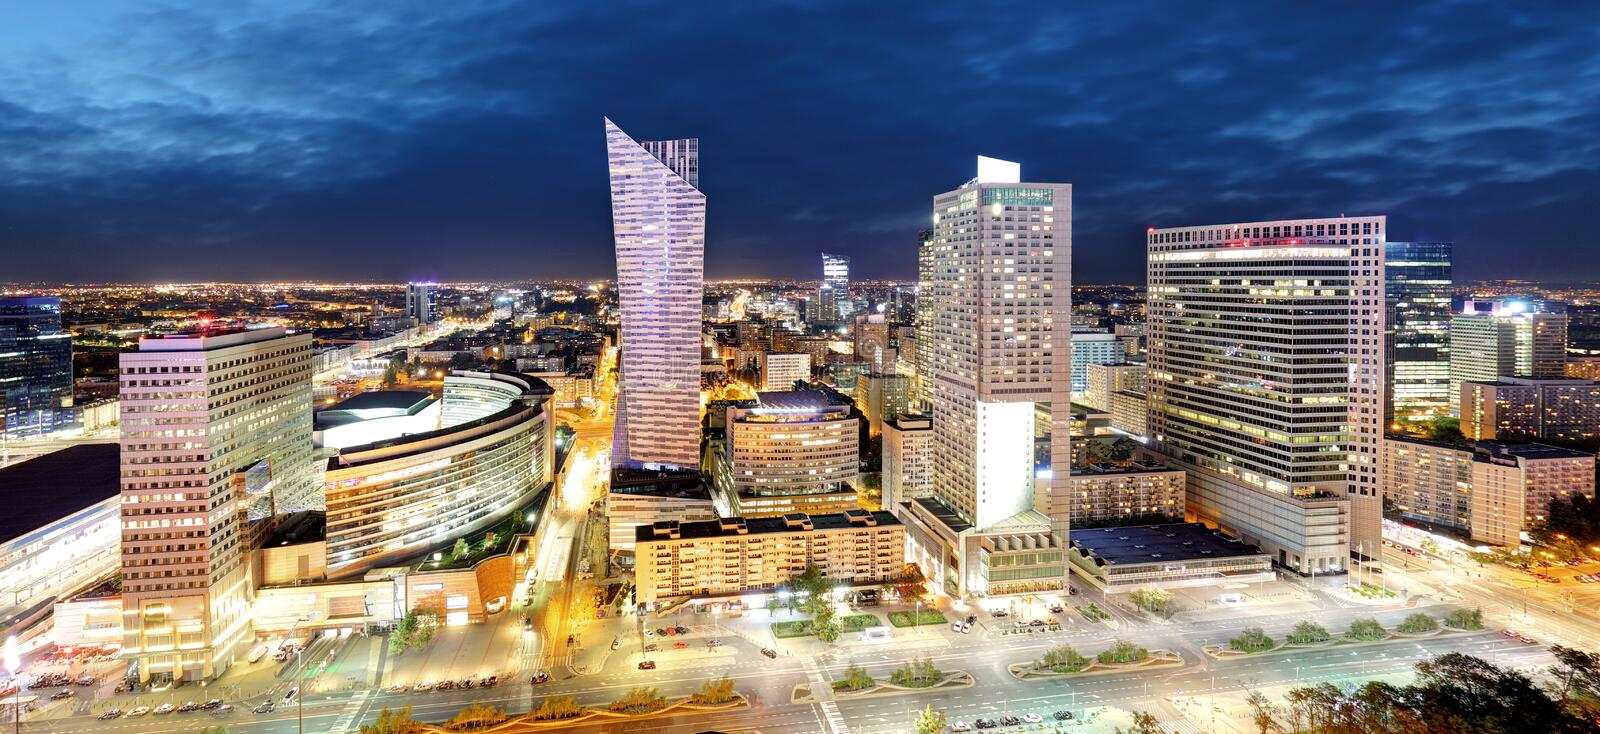 Panorama of Warsaw city center during the night, Poland royalty free stock photography